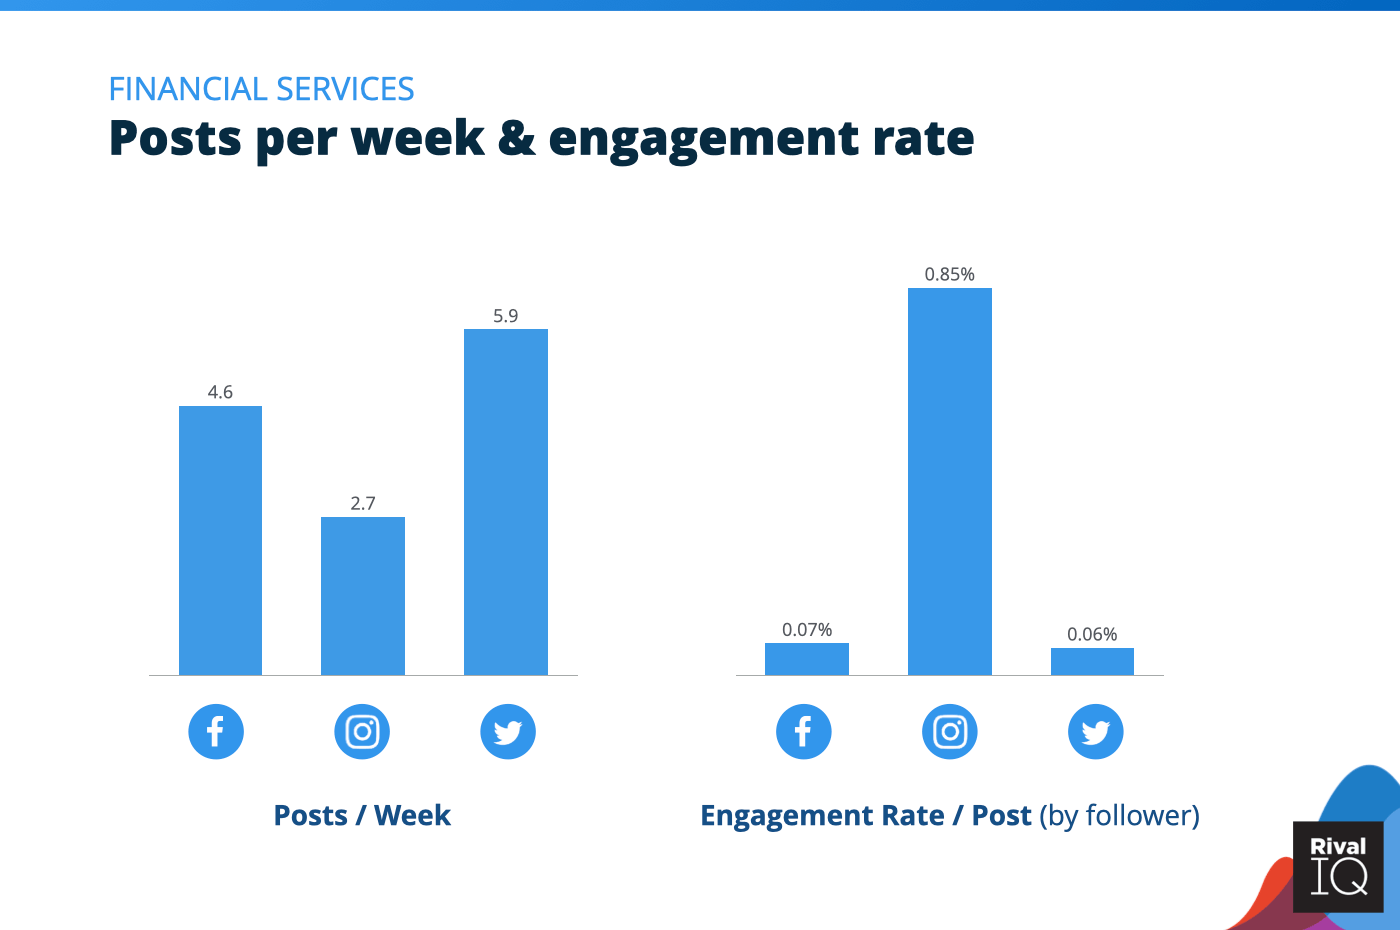 Chart of Posts per week and engagement rate per post across all channels, Financial Services